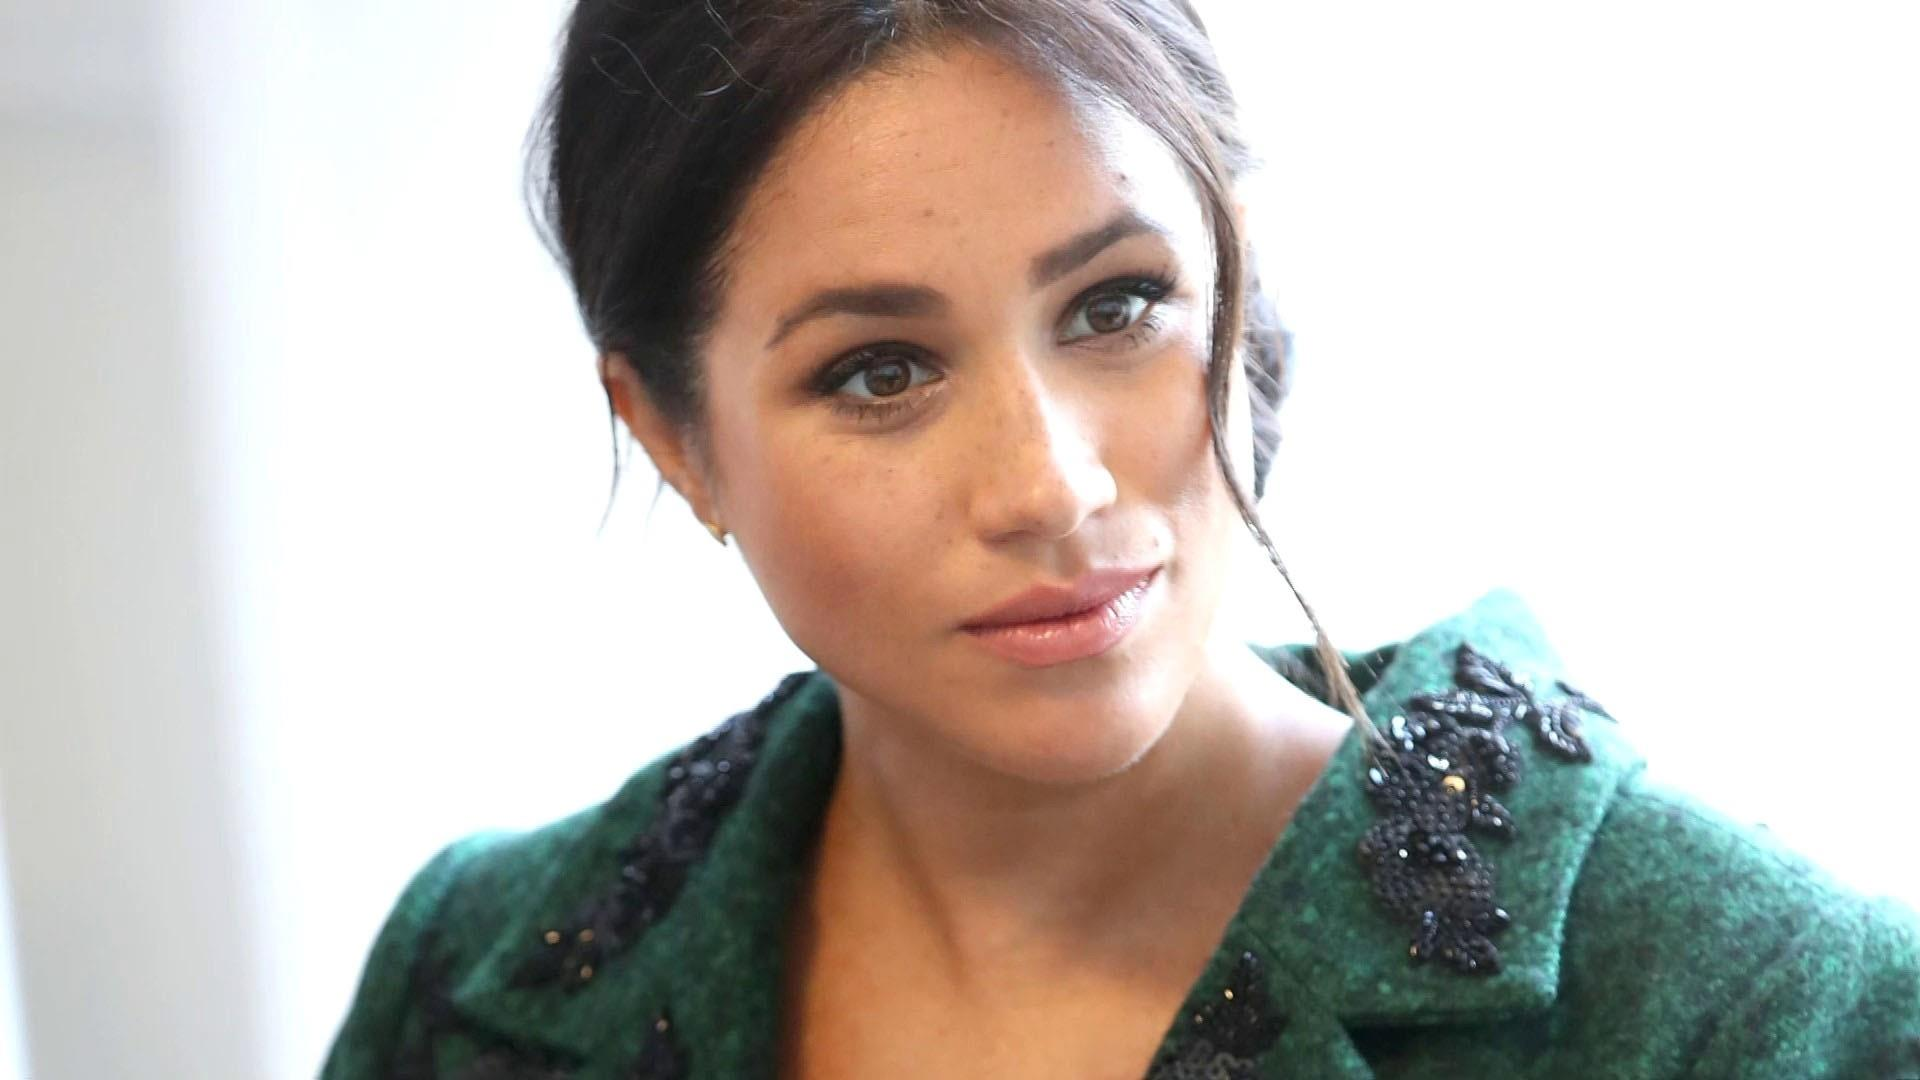 6x4djcsj9p0nzm https www nbcnews com news world meghan markle reveals she suffered miscarriage n1248933